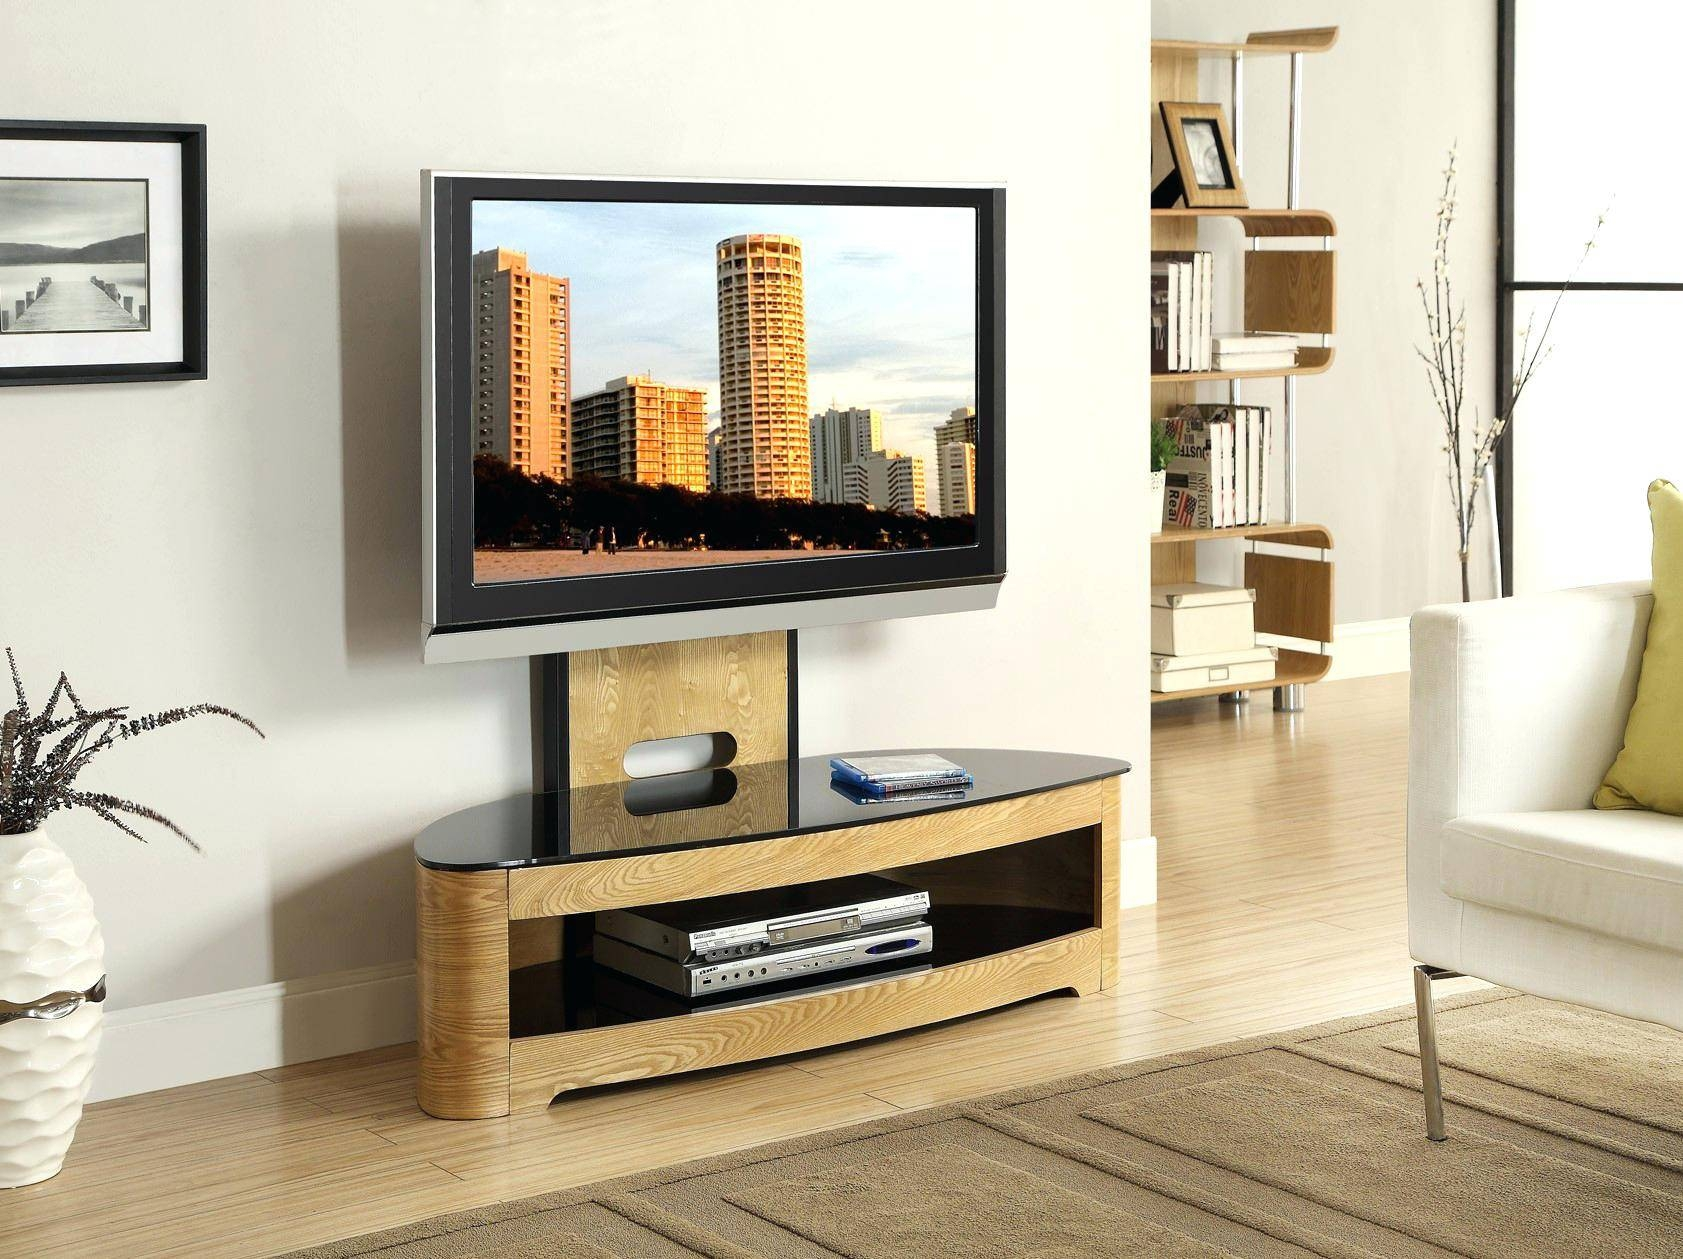 Tv Stand : Tv Stands Tv Stand Oak Oak Tv Stands For Flat Screen Intended For Corner Oak Tv Stands For Flat Screen (View 14 of 15)